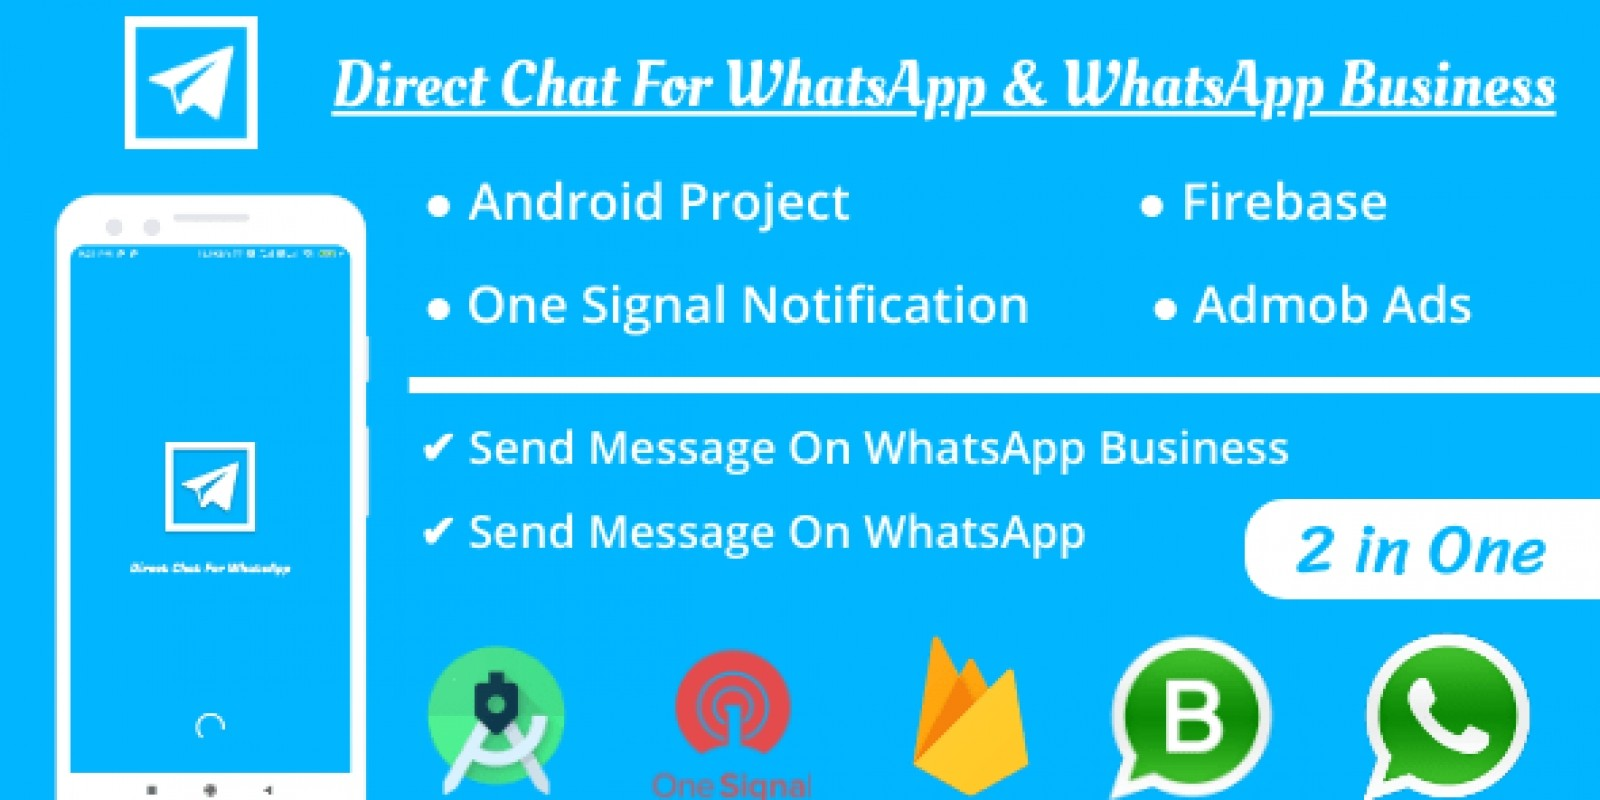 Send Direct Message On WhatsApp Android App